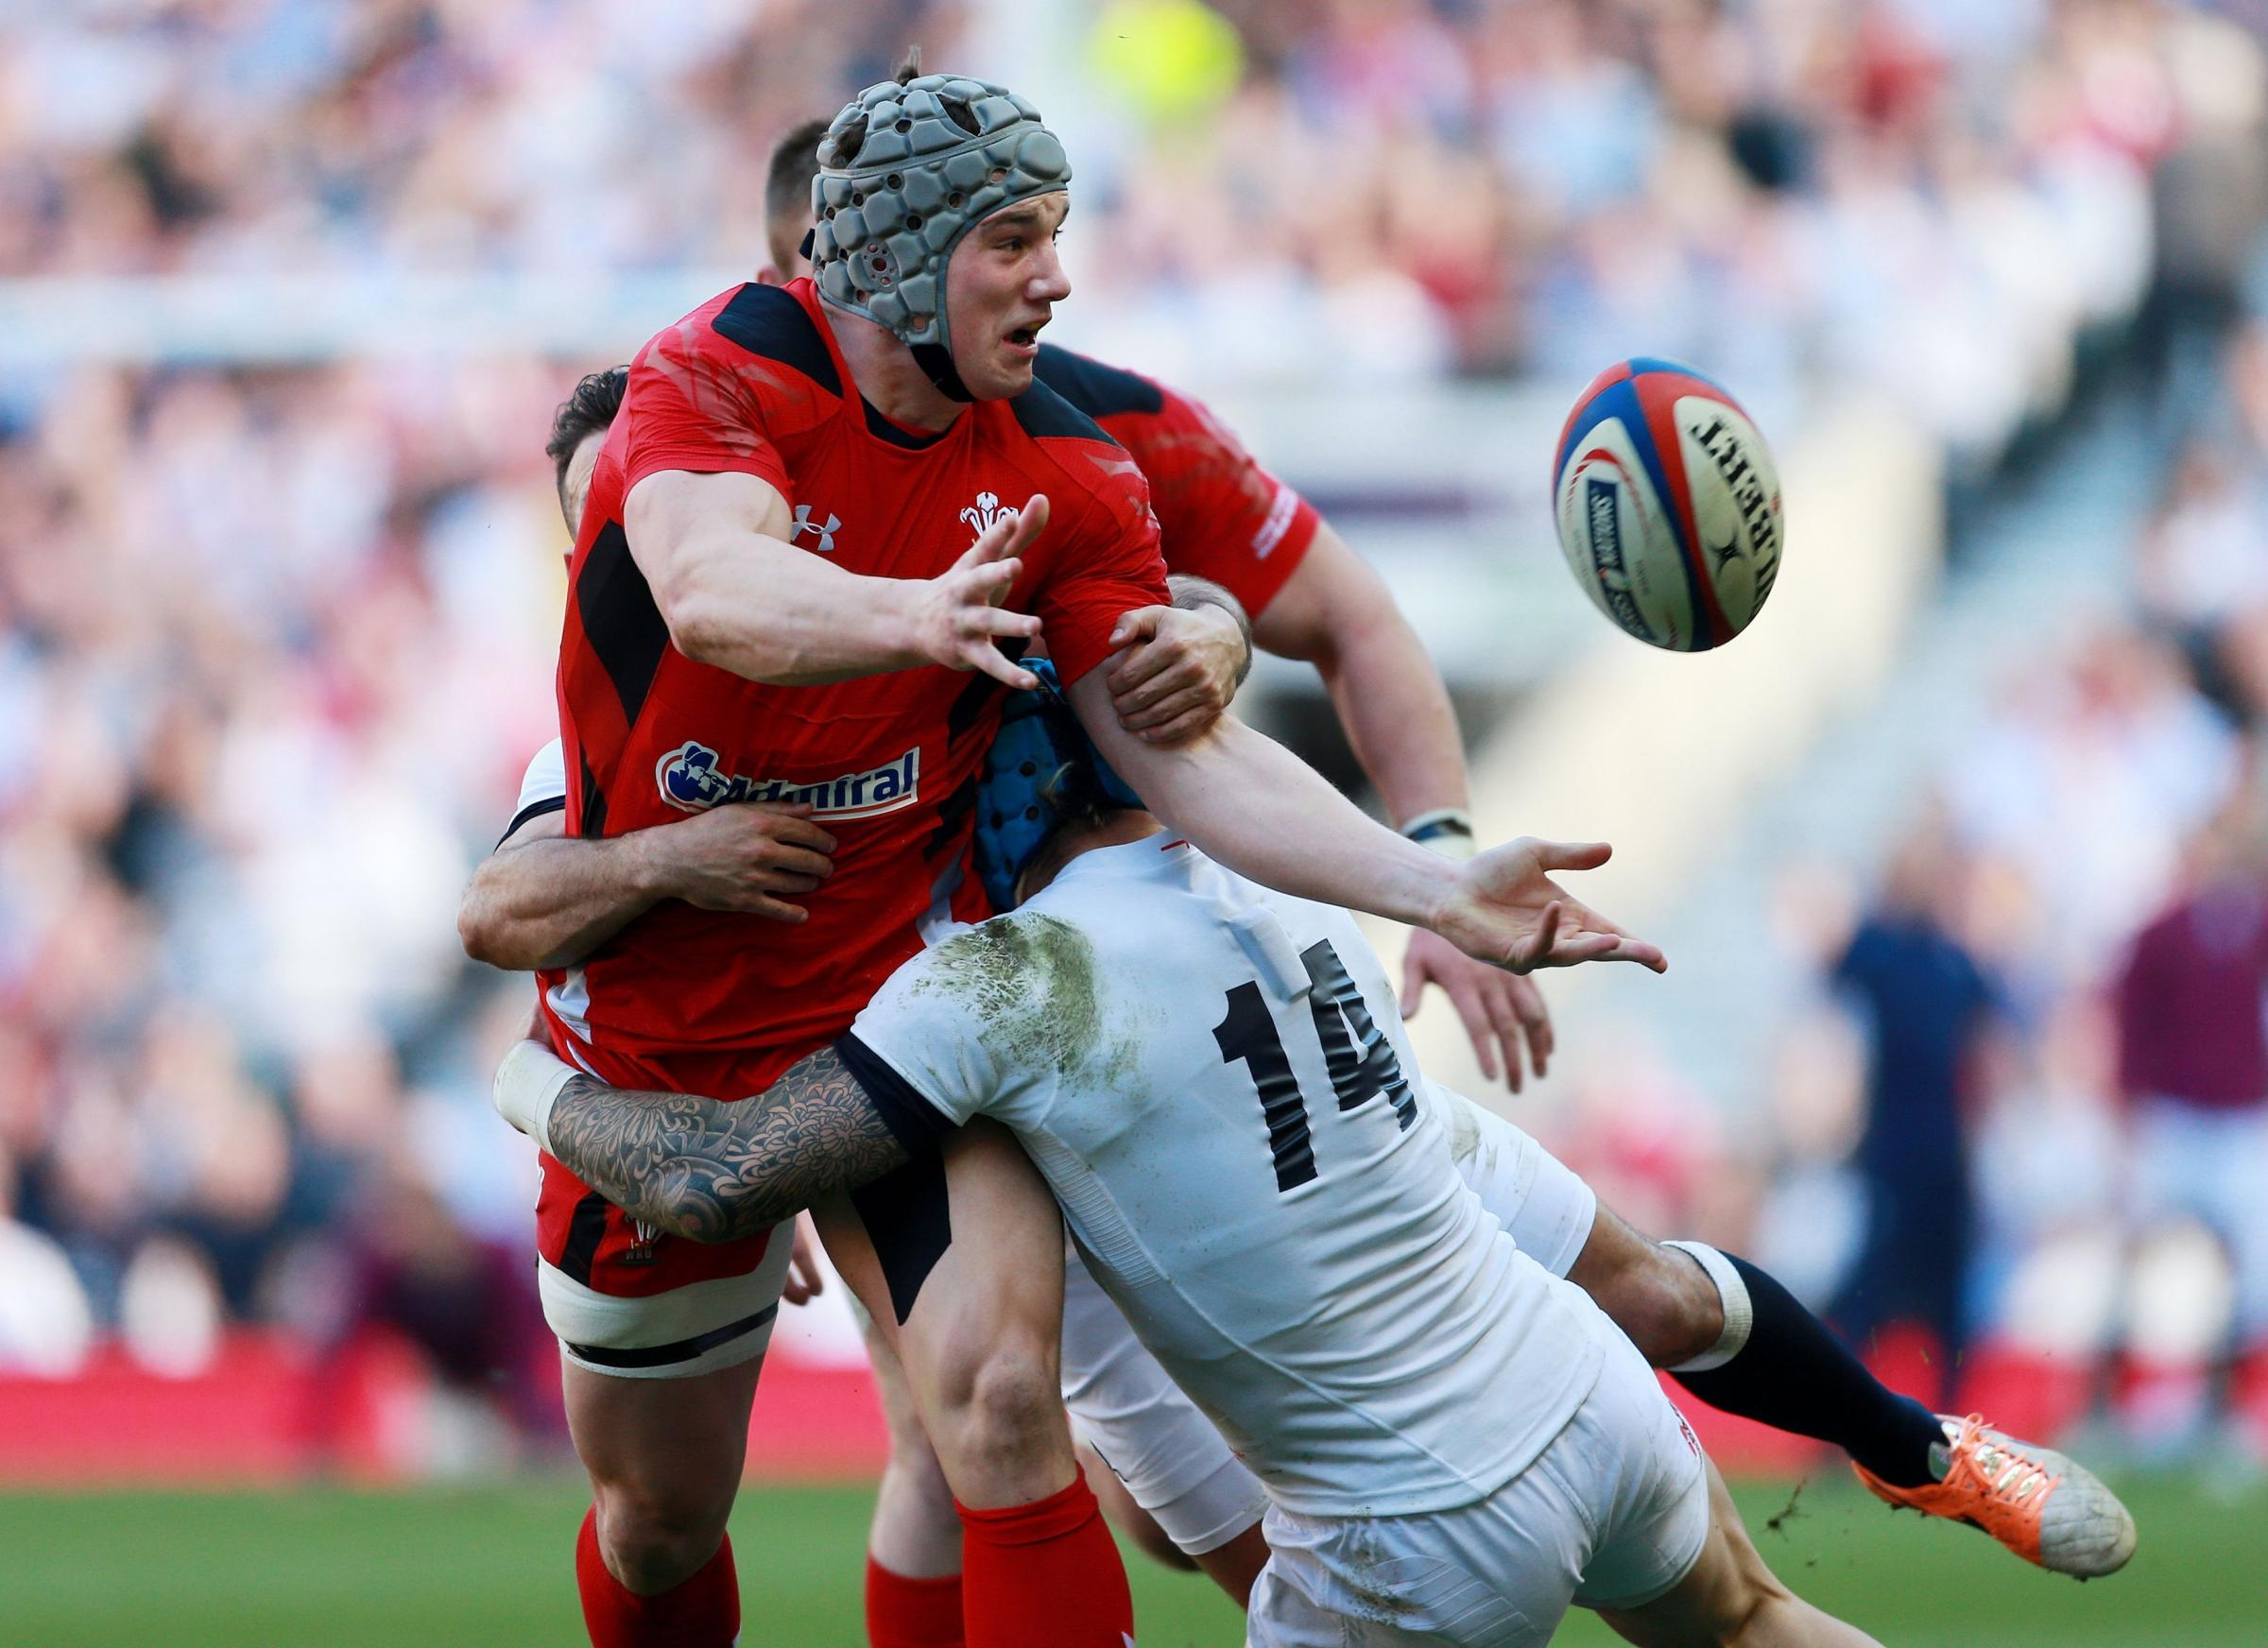 TOUGH DAY: Jonathan Davies and his Wales teammates struggled against a rampant England